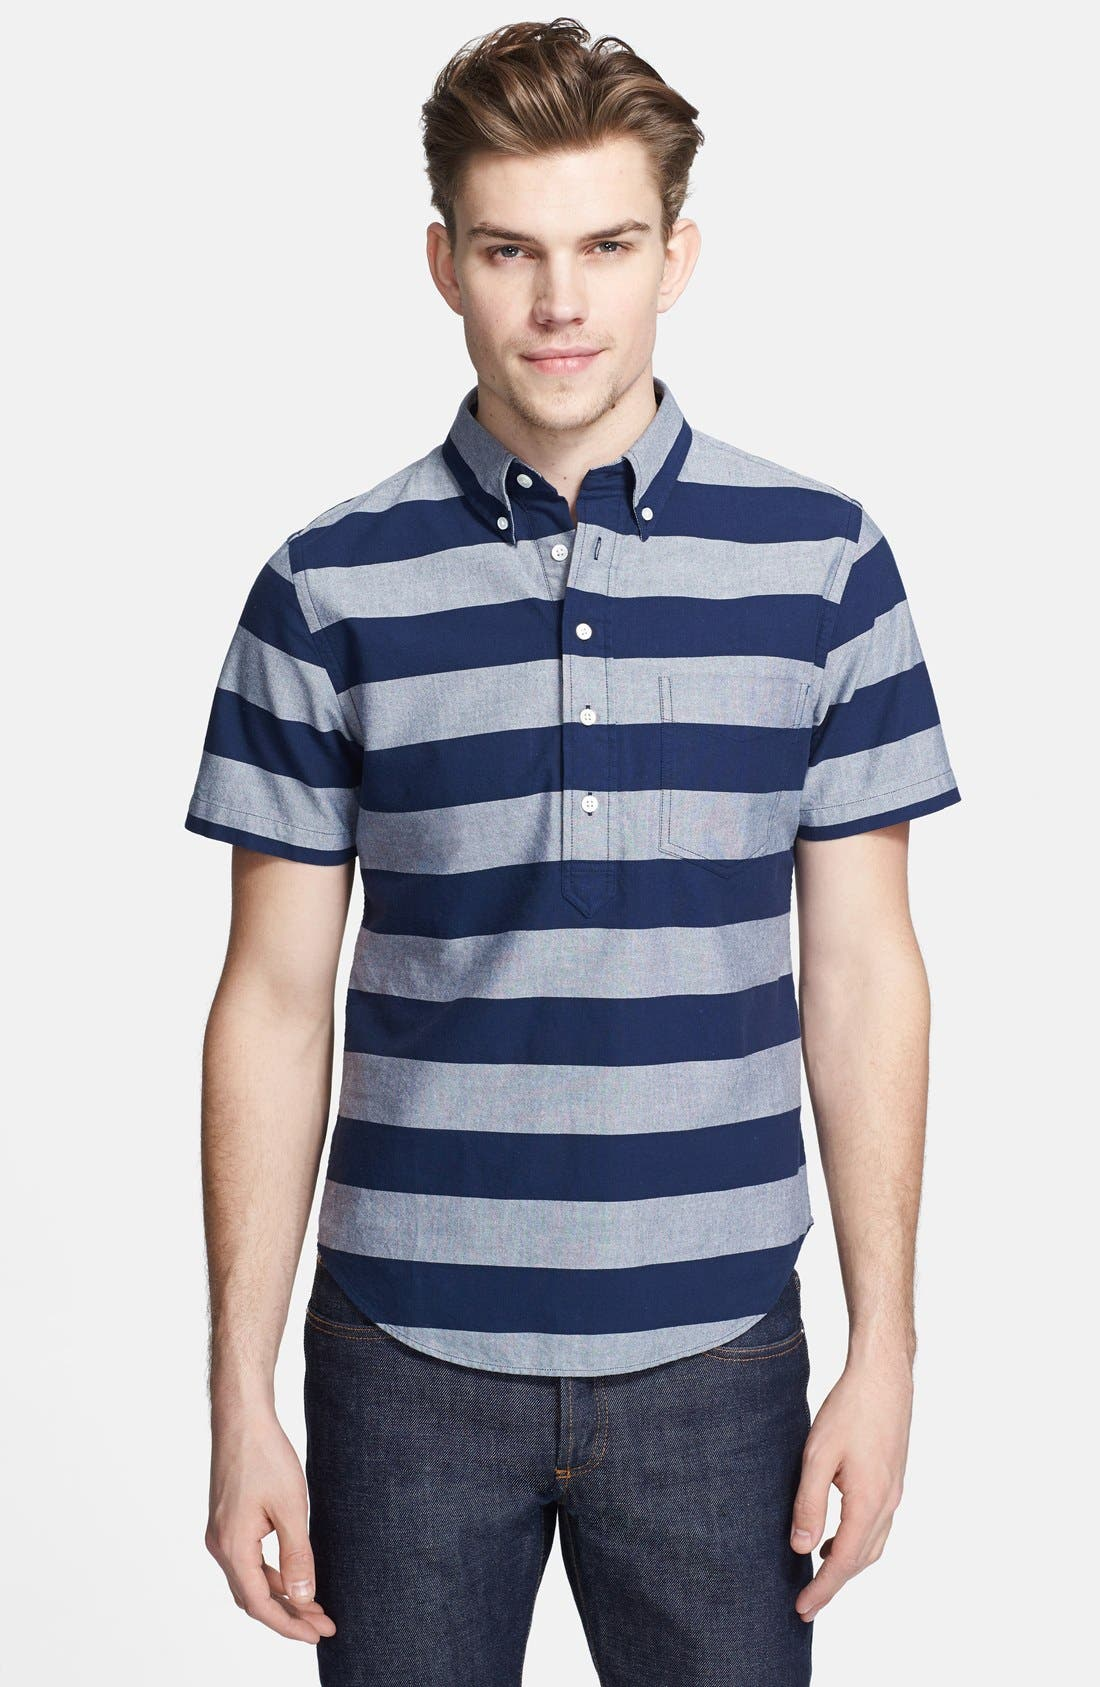 Alternate Image 1 Selected - Jack Spade 'Percy' Short Sleeve Stripe Pullover Shirt